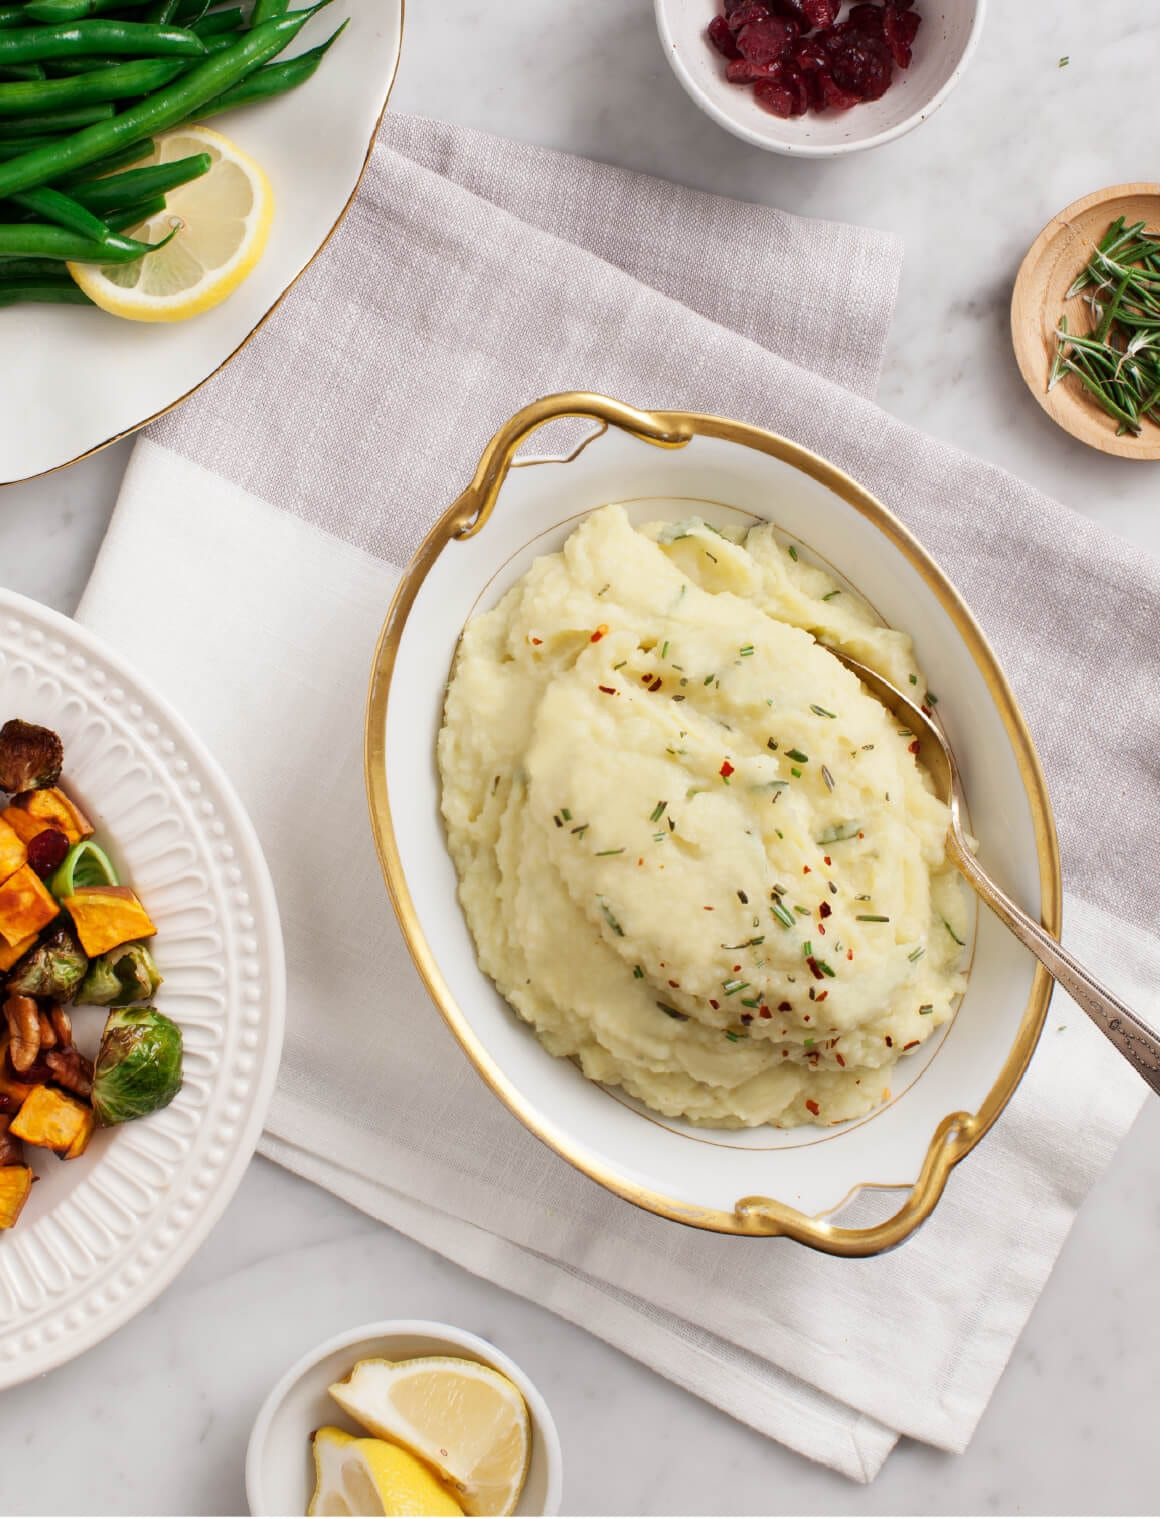 Vegetarian Sides For Thanksgiving  Ve arian Thanksgiving Sides Love and Lemons